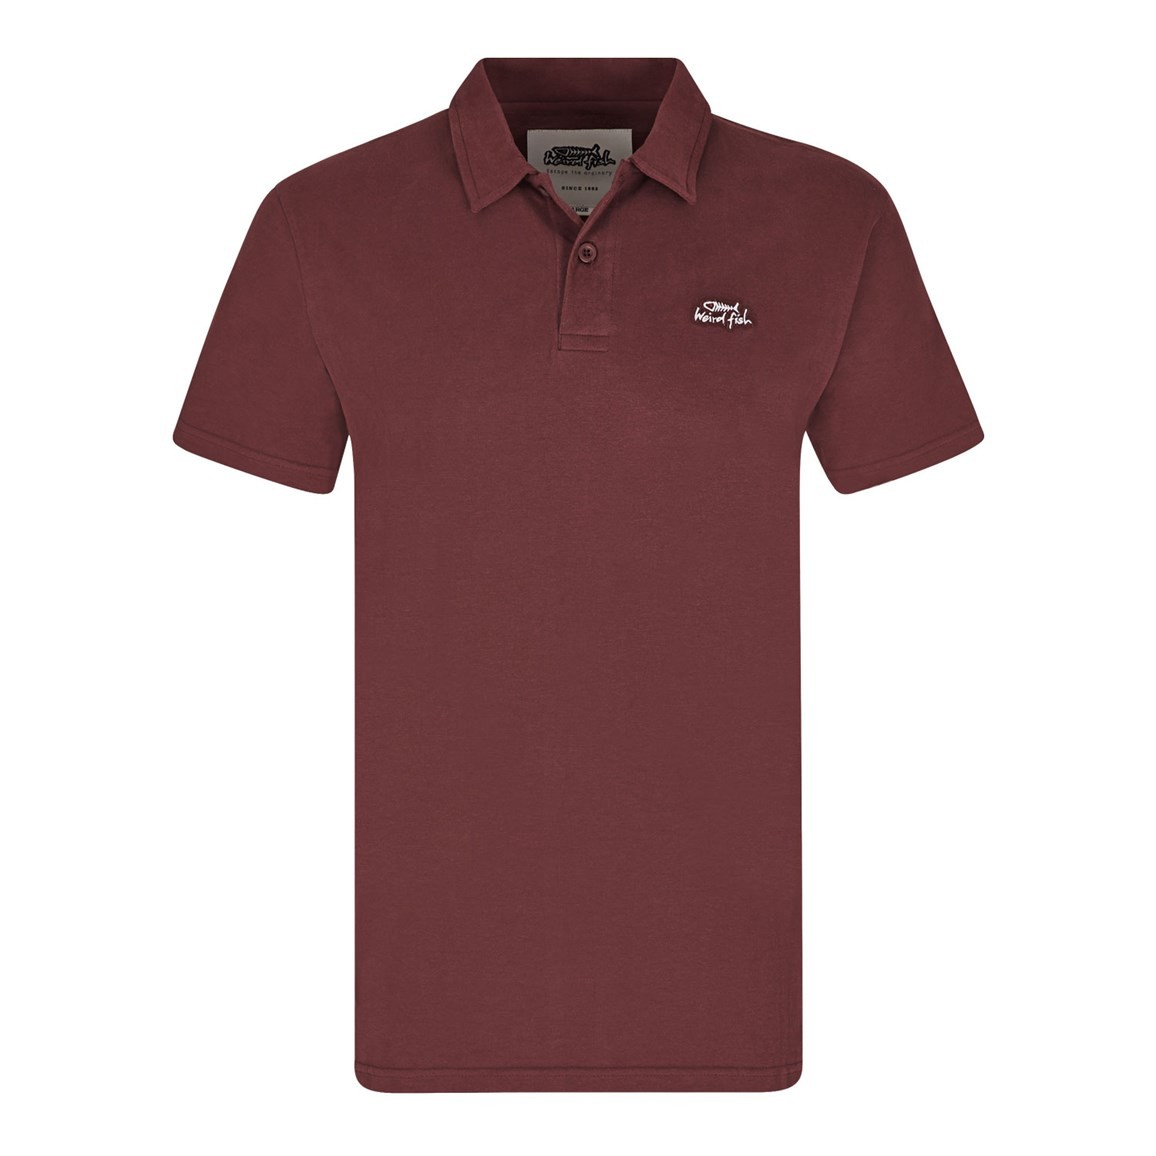 Image of Weird Fish Andrew Plain Jersey Polo Shirt Conker Size 2XL